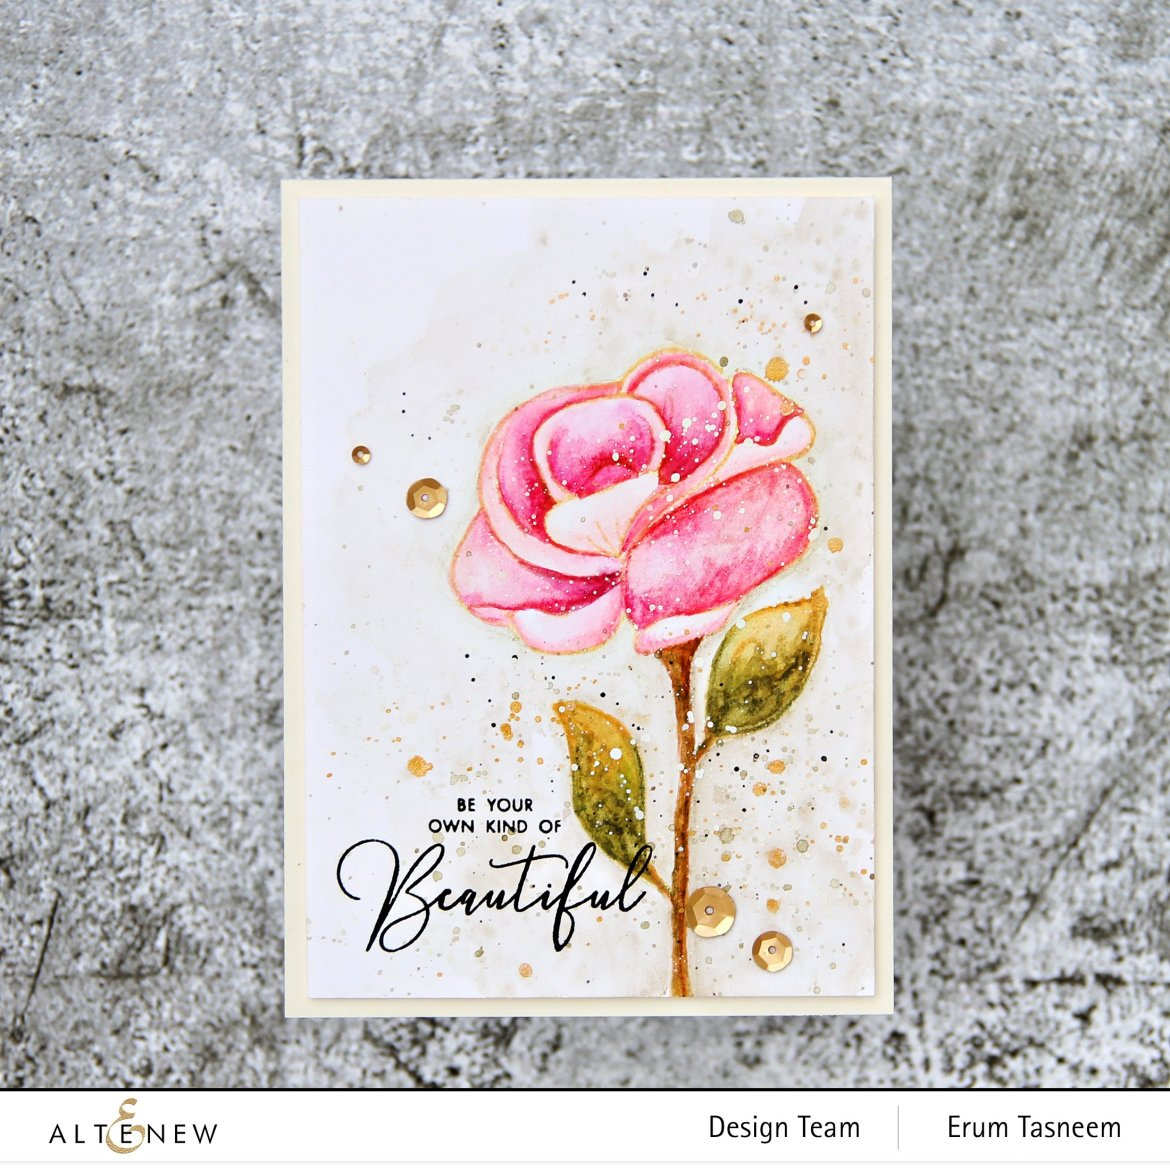 Altenew Woodless Watercolor Pencils and Simple Rose Stamp Set | Erum Tasneem | @pr0digy0